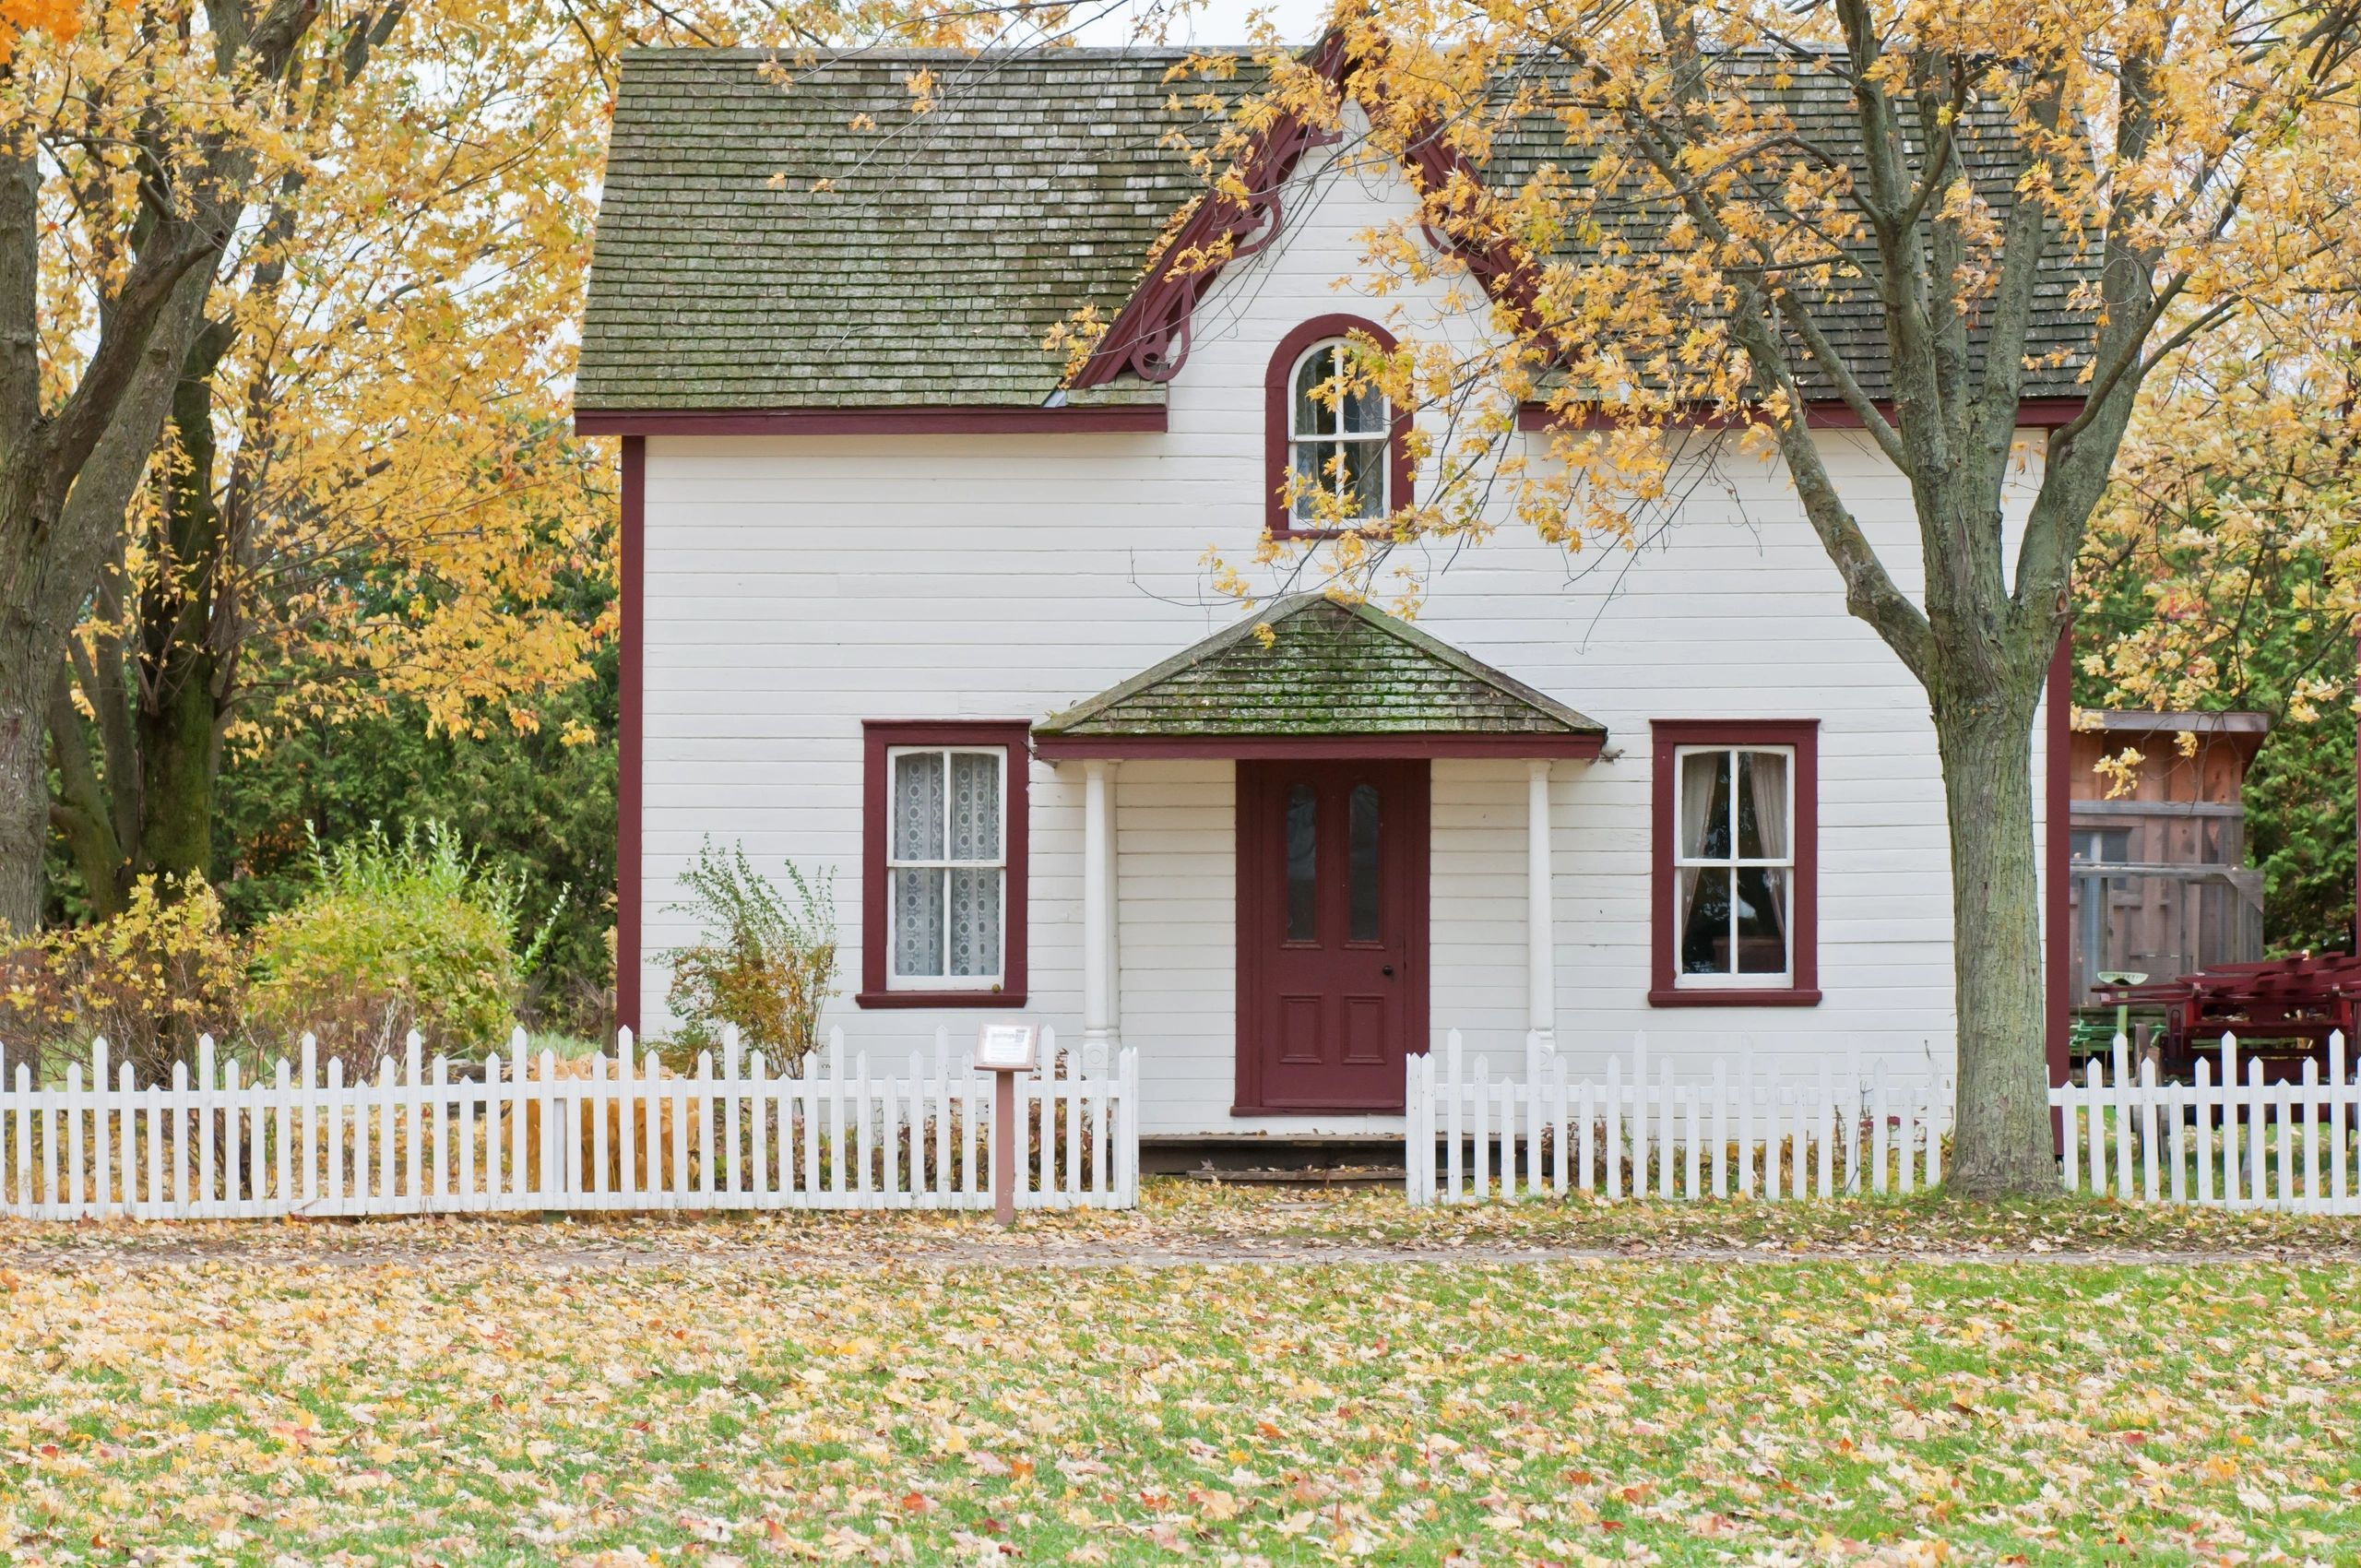 A freshly painted house exterior with white picket fence